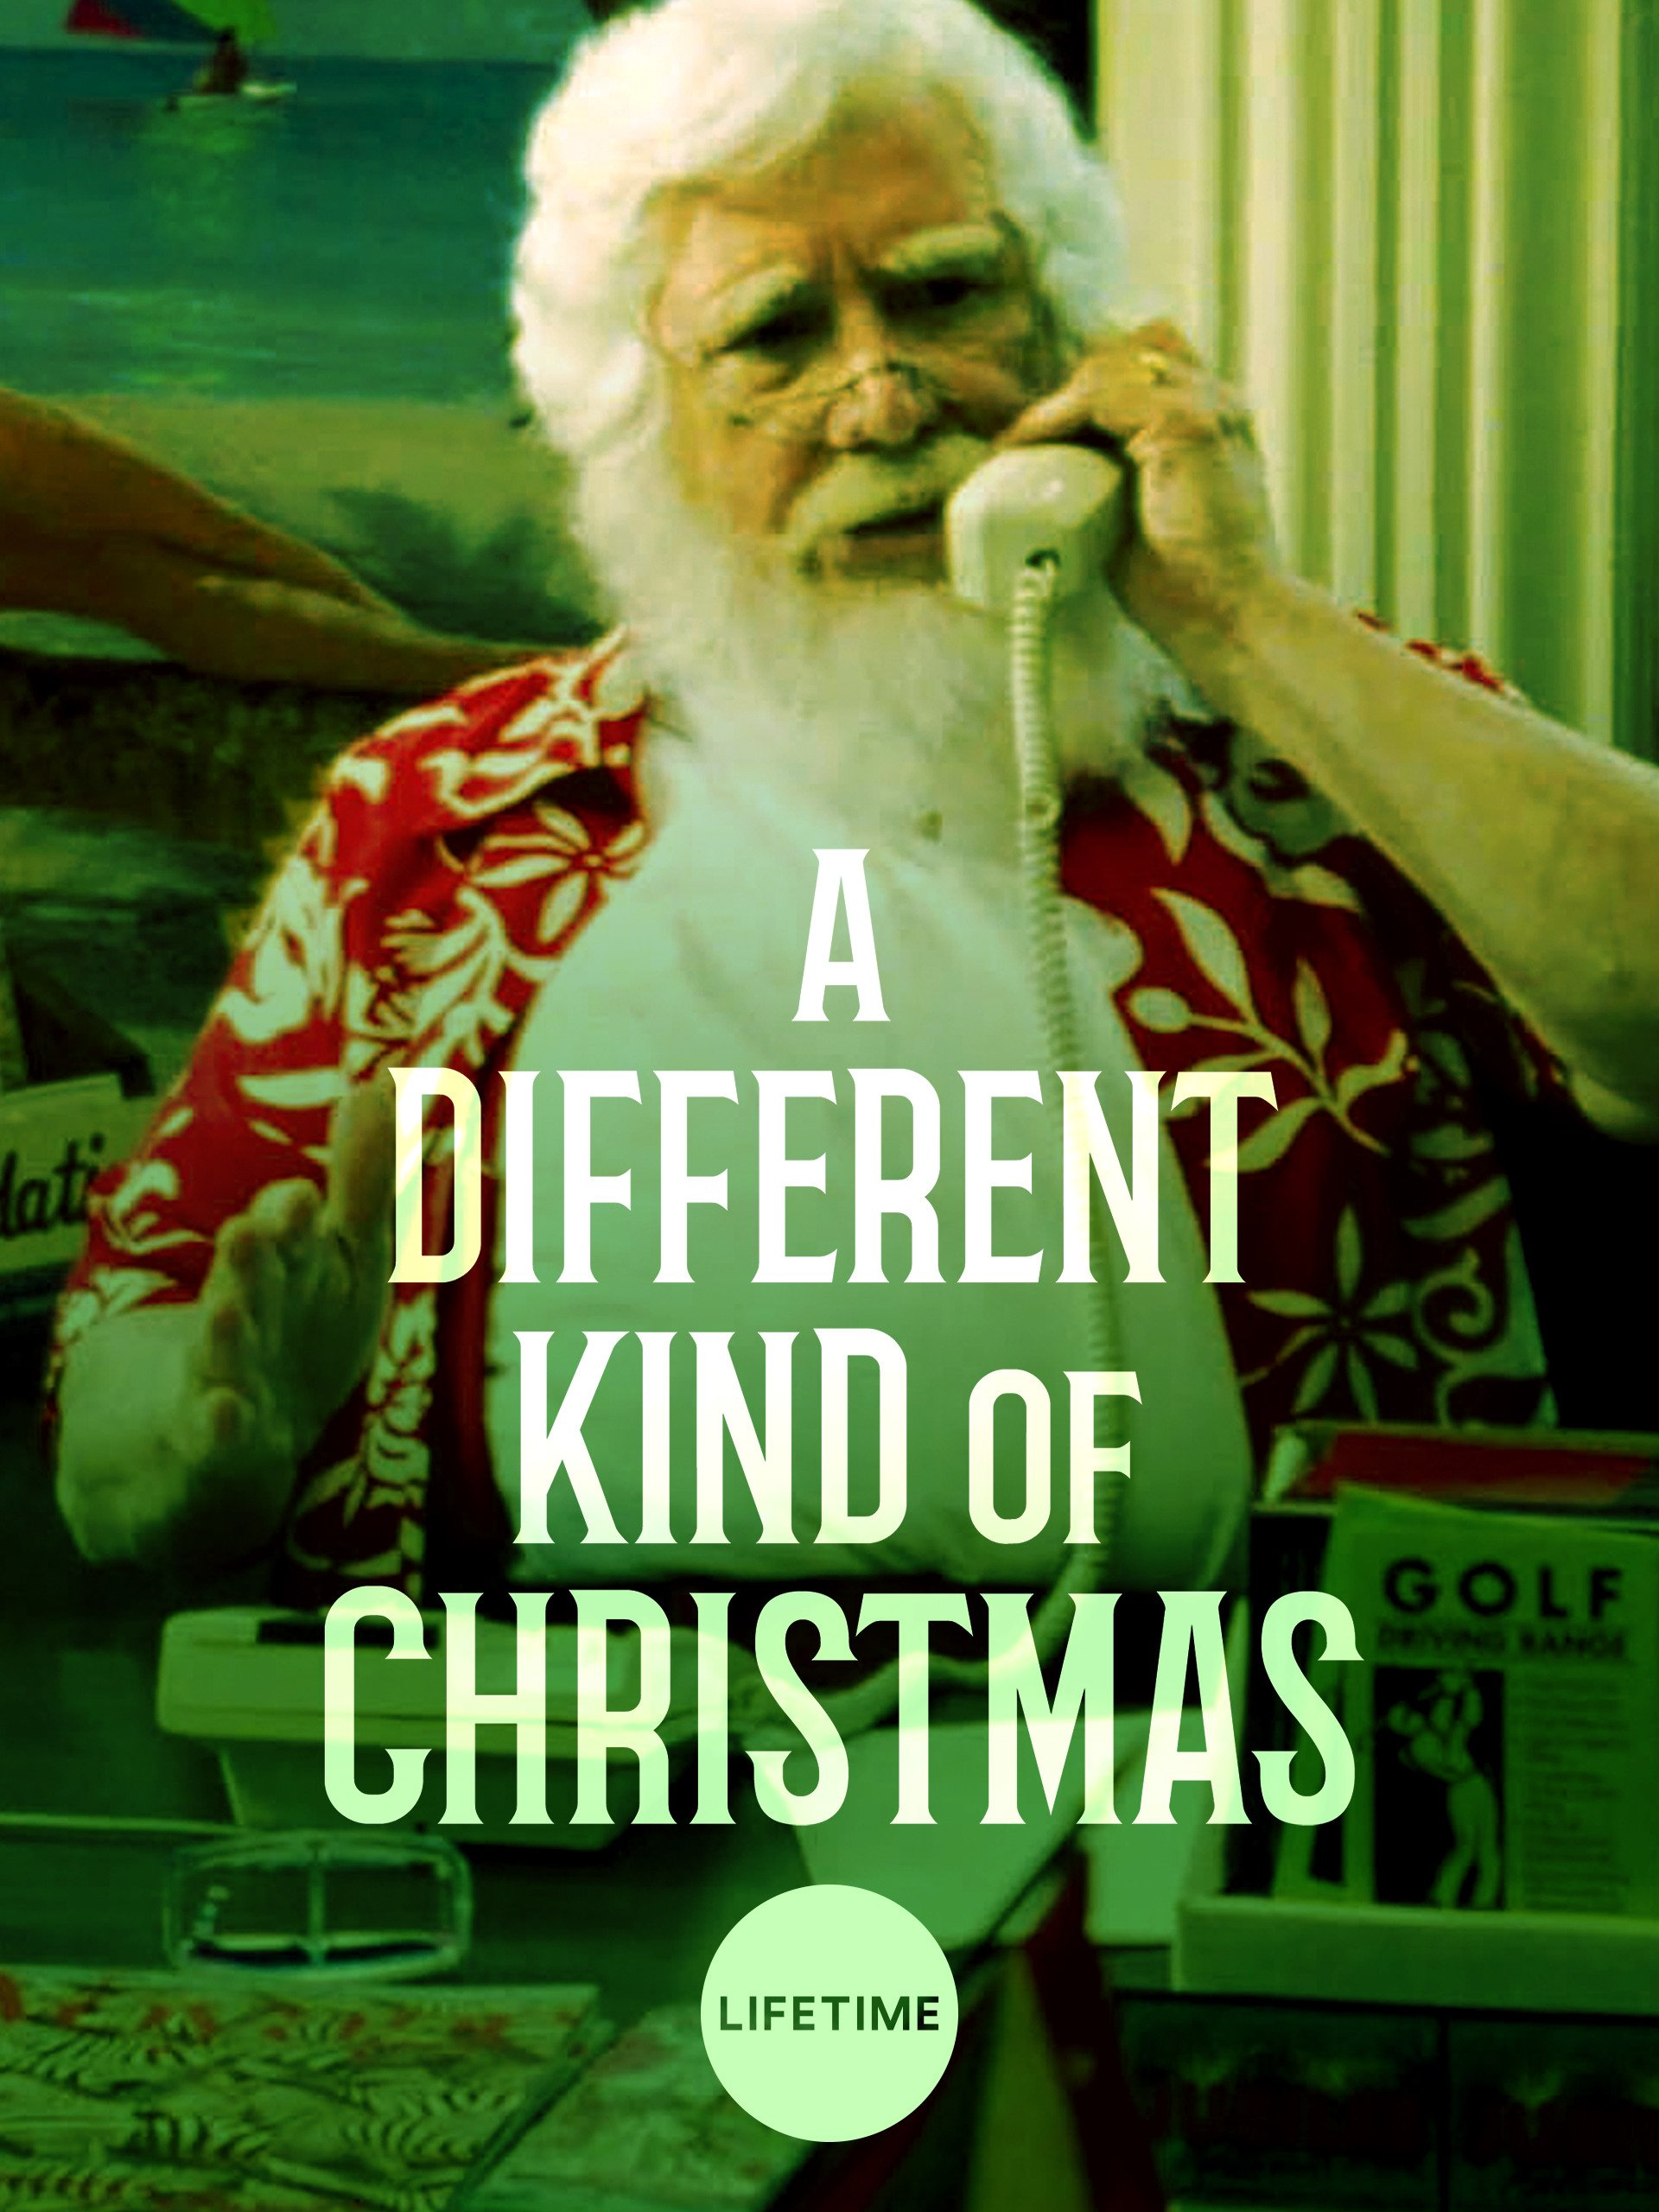 A Different Kind Of Christmas.Amazon Com A Different Kind Of Christmas Inc Lionsgate